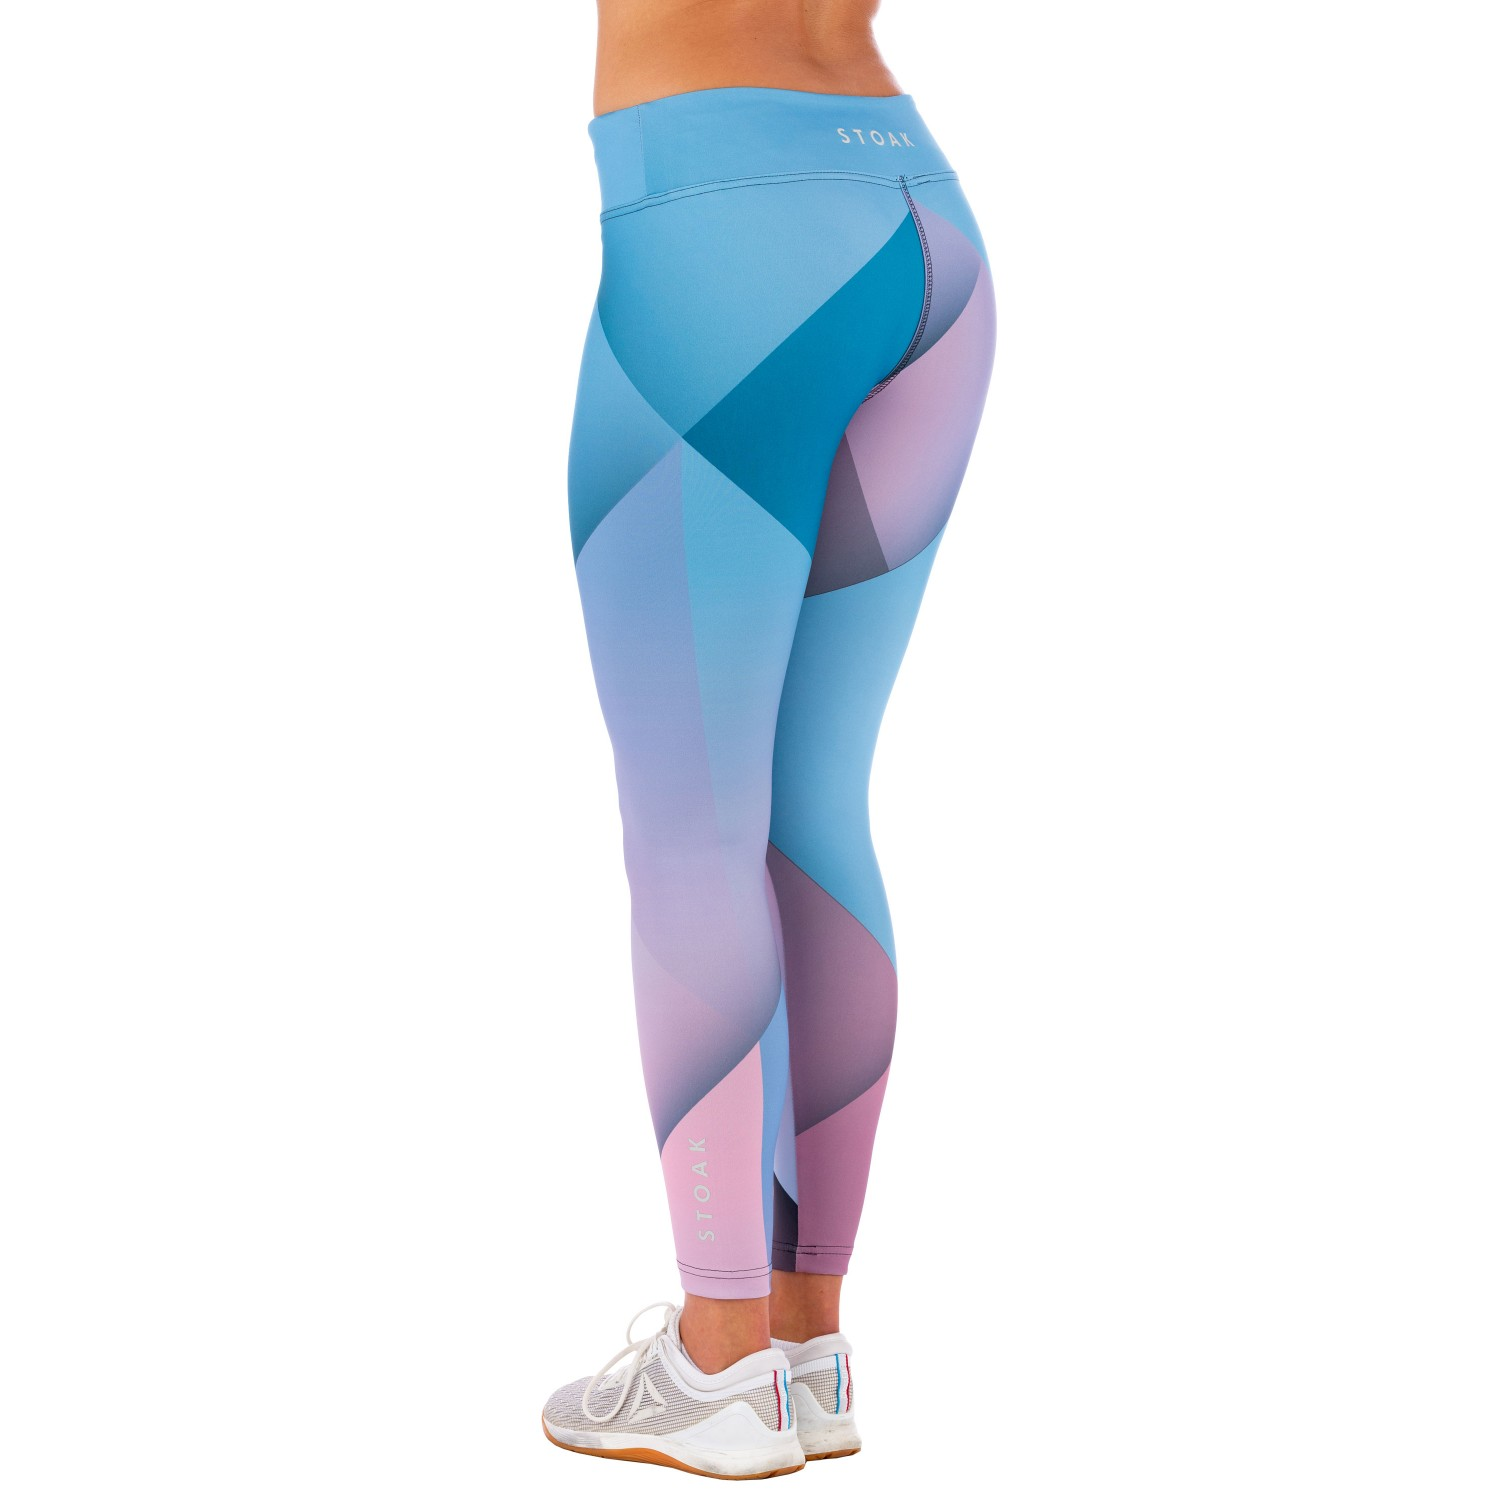 STOAK SUNRISE Performance Leggings